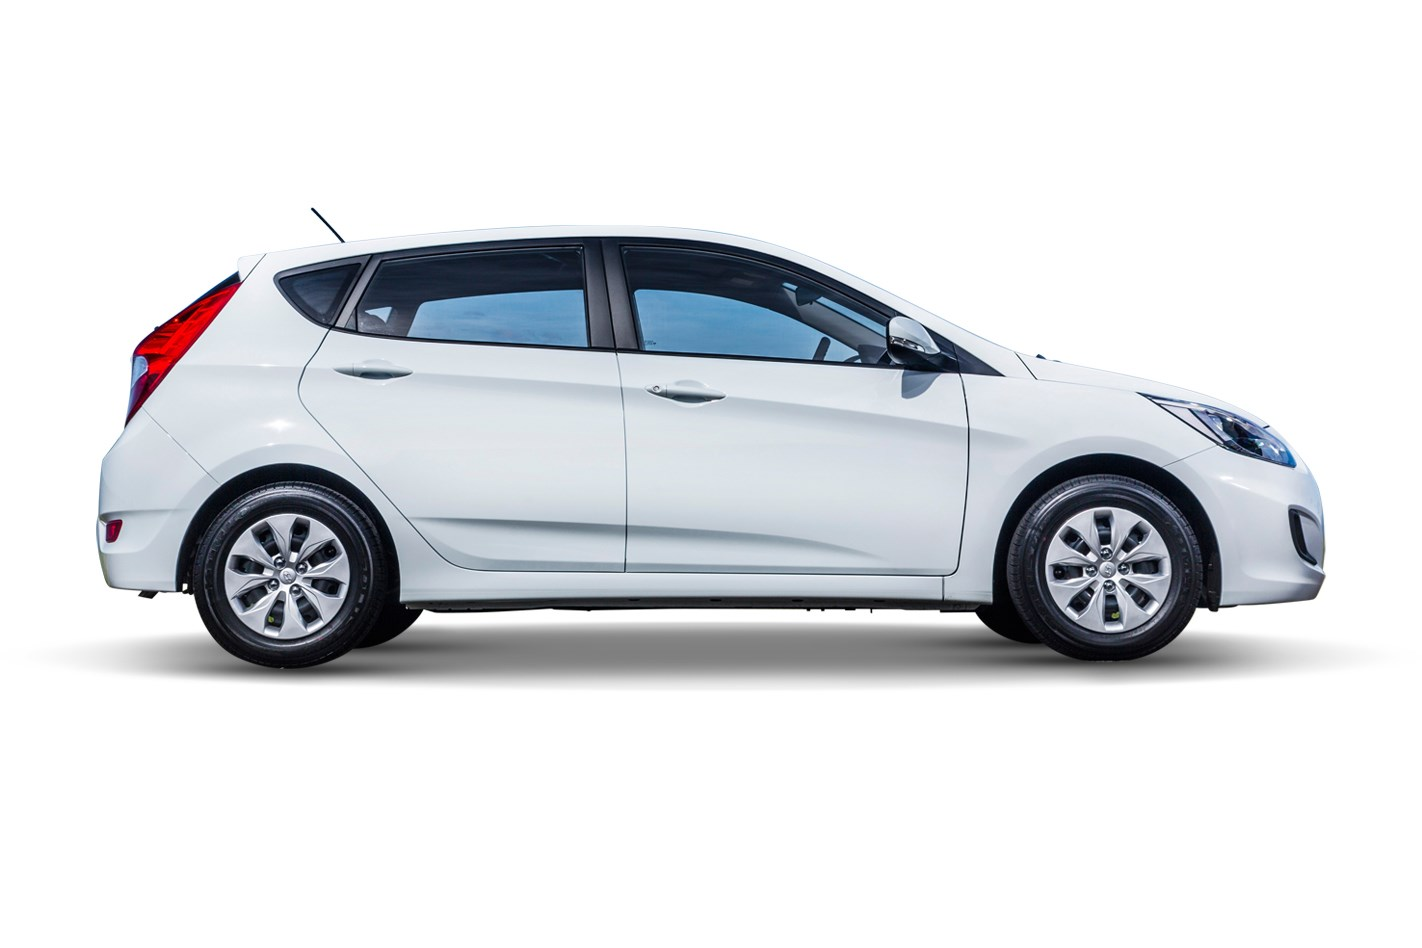 ca accent se modesto rent hatchback hyundai to own contact veh in